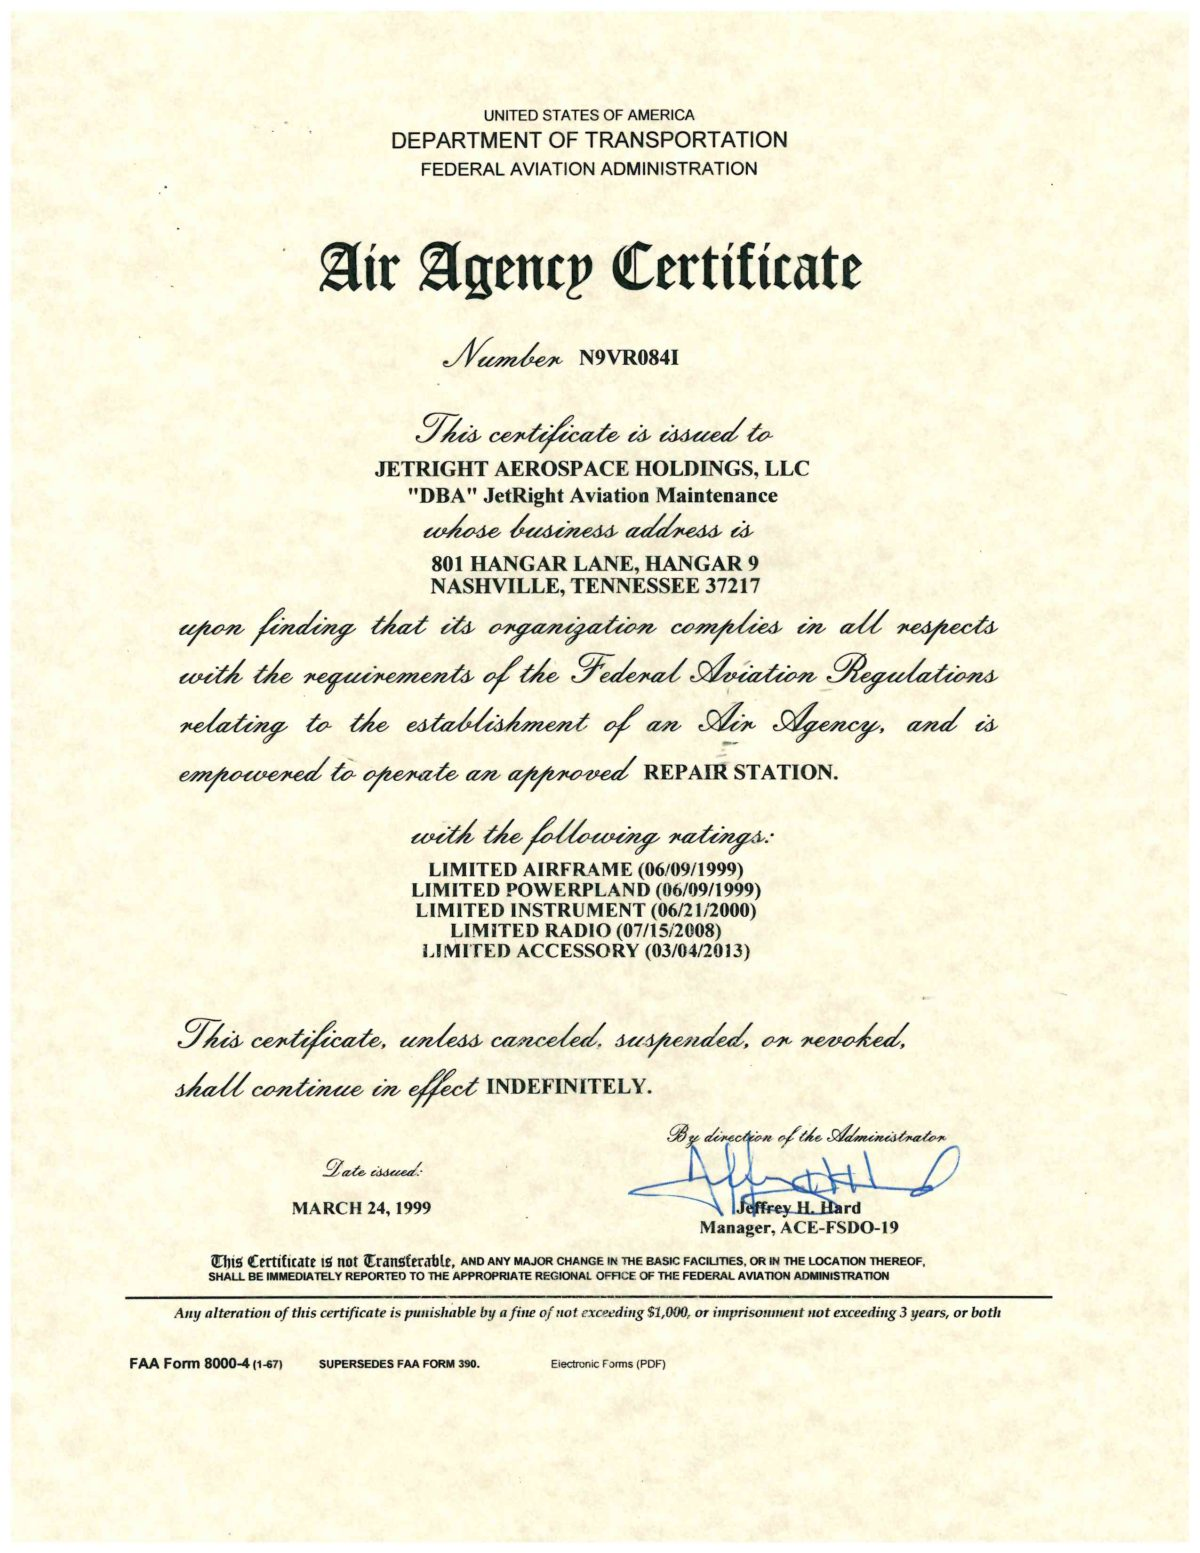 JetRight-Air-Agency-Certificate-1200x1553